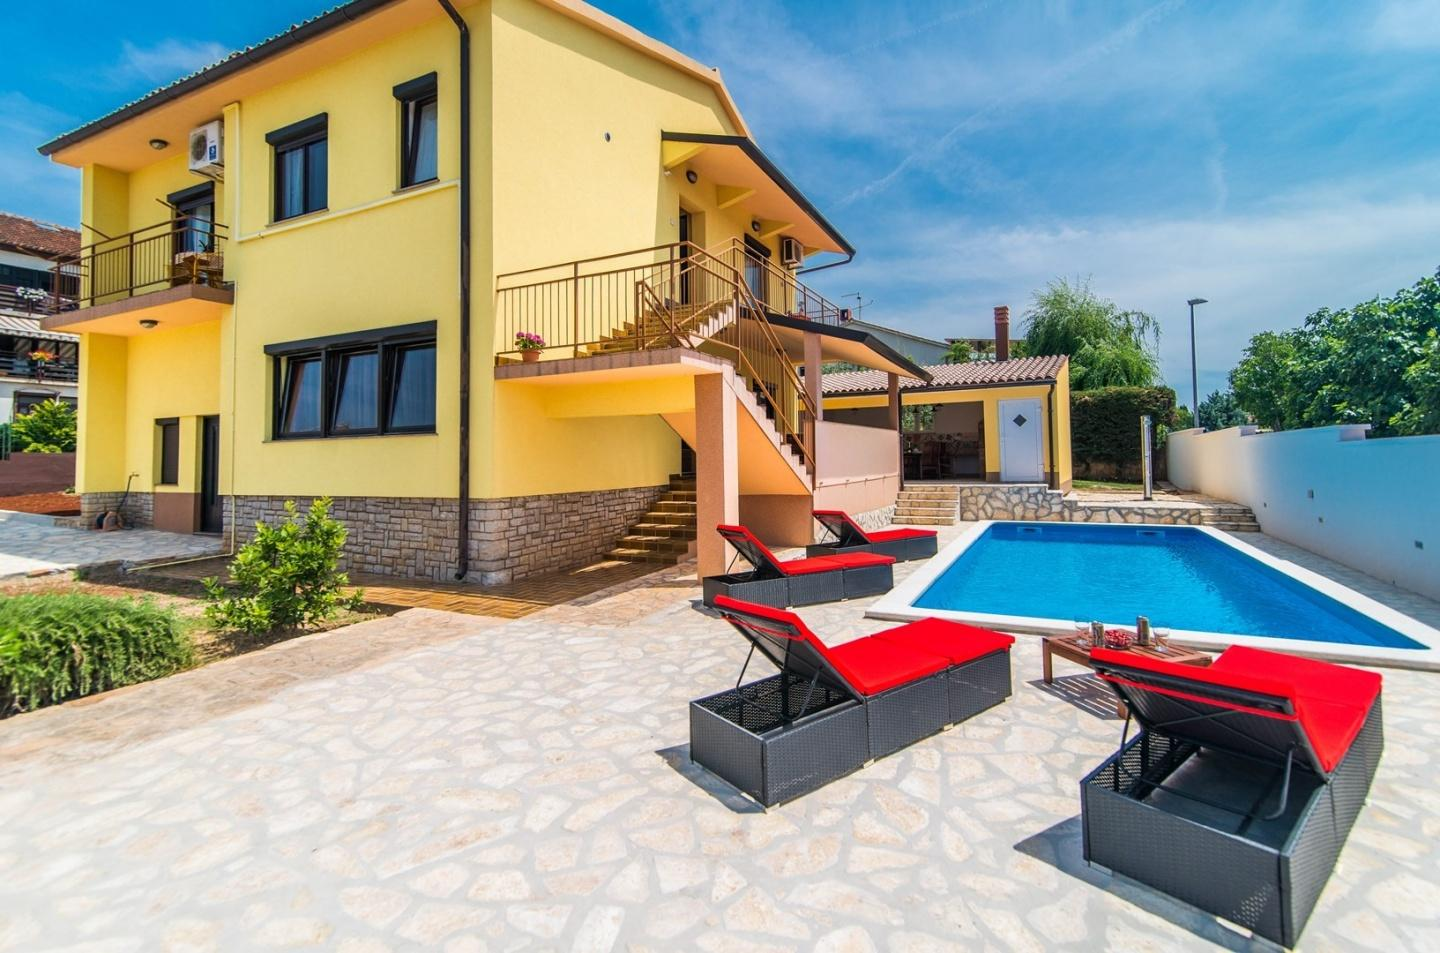 Spacious villa in Pula with Parking, Internet, ... Slide-1